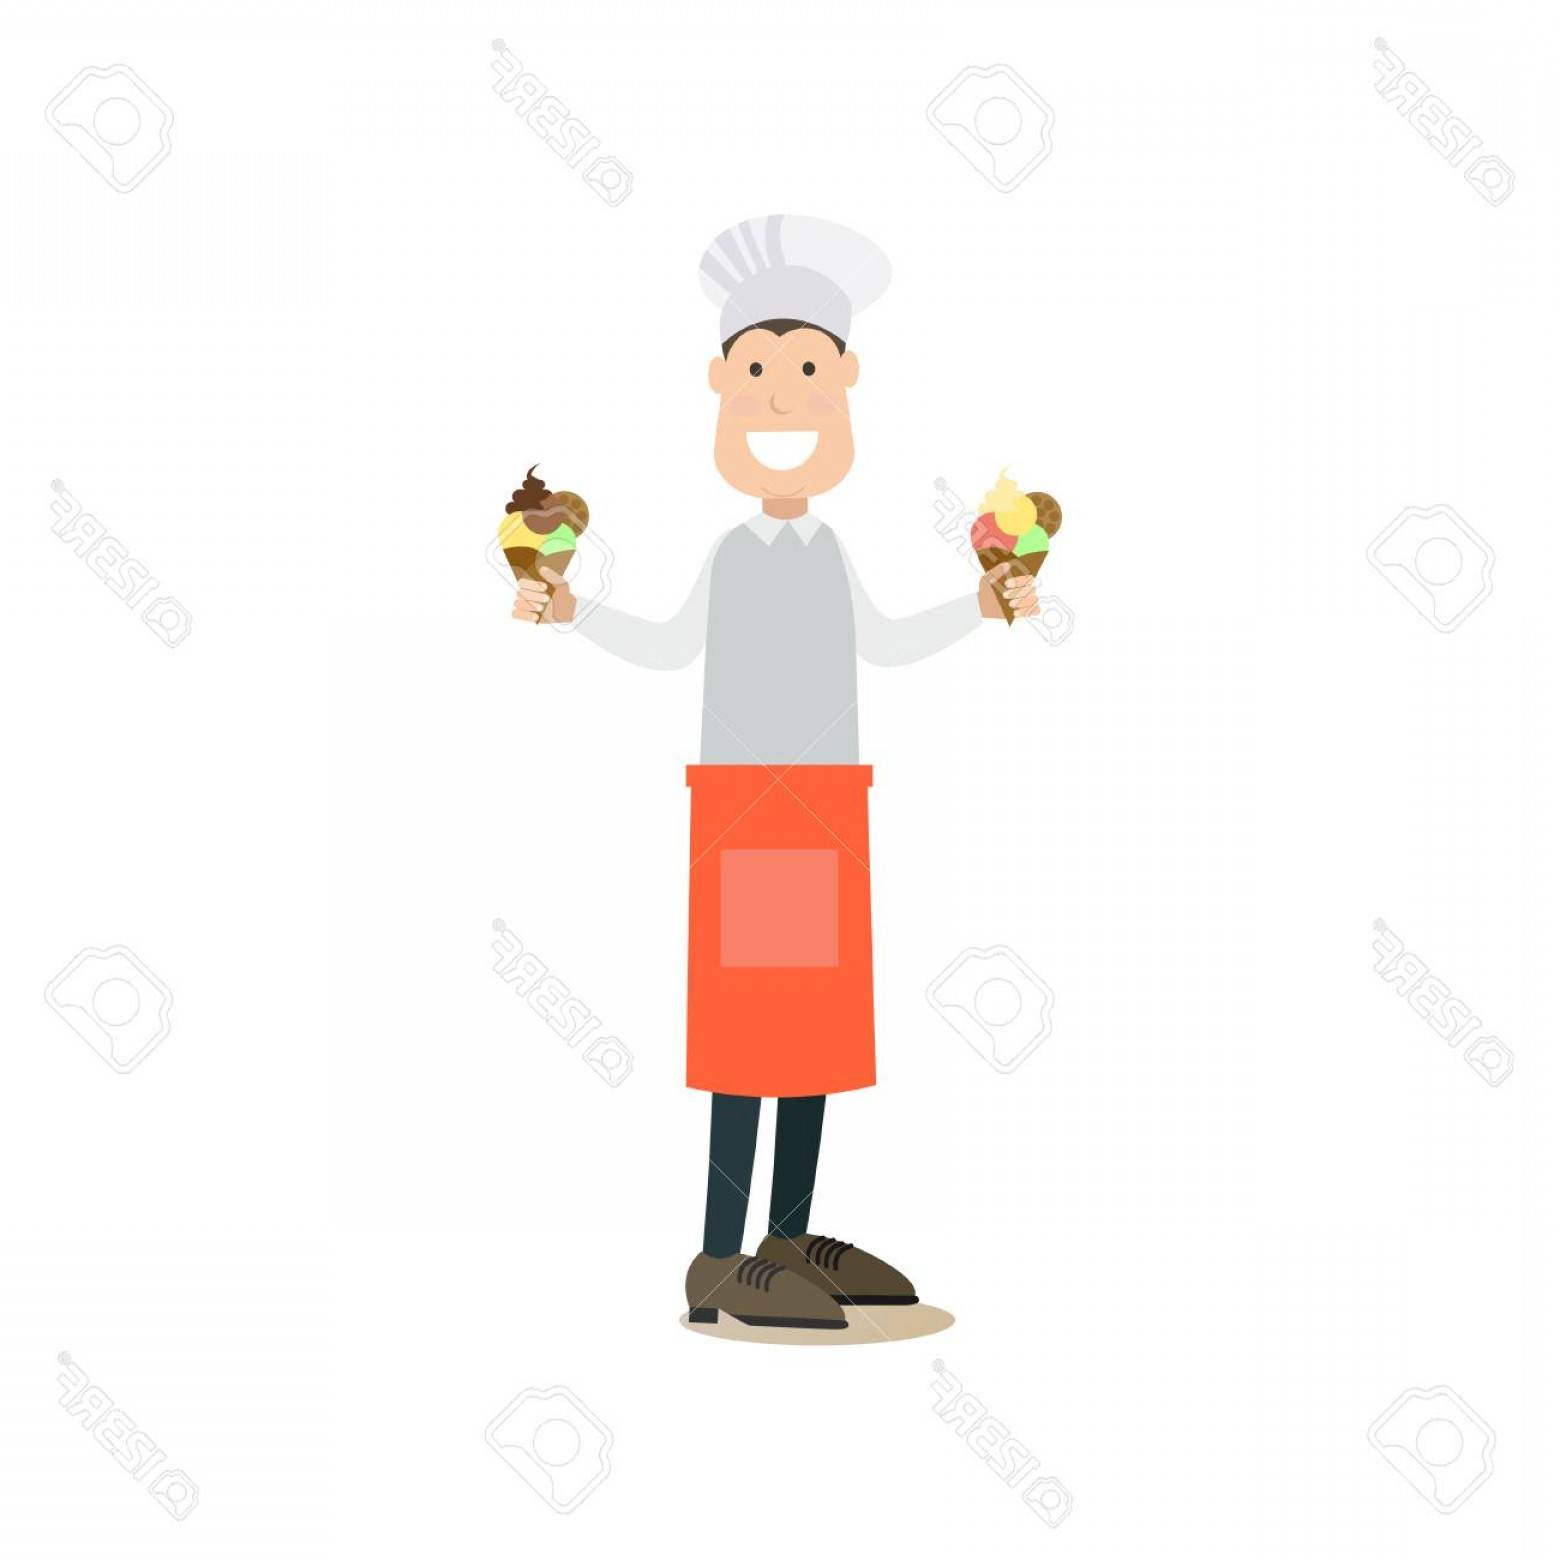 Salesman Vector: Photostock Vector Vector Illustration Of Happy Smiling Ice Cream Salesman Holding Ice Cream Cones In Both Hands Street